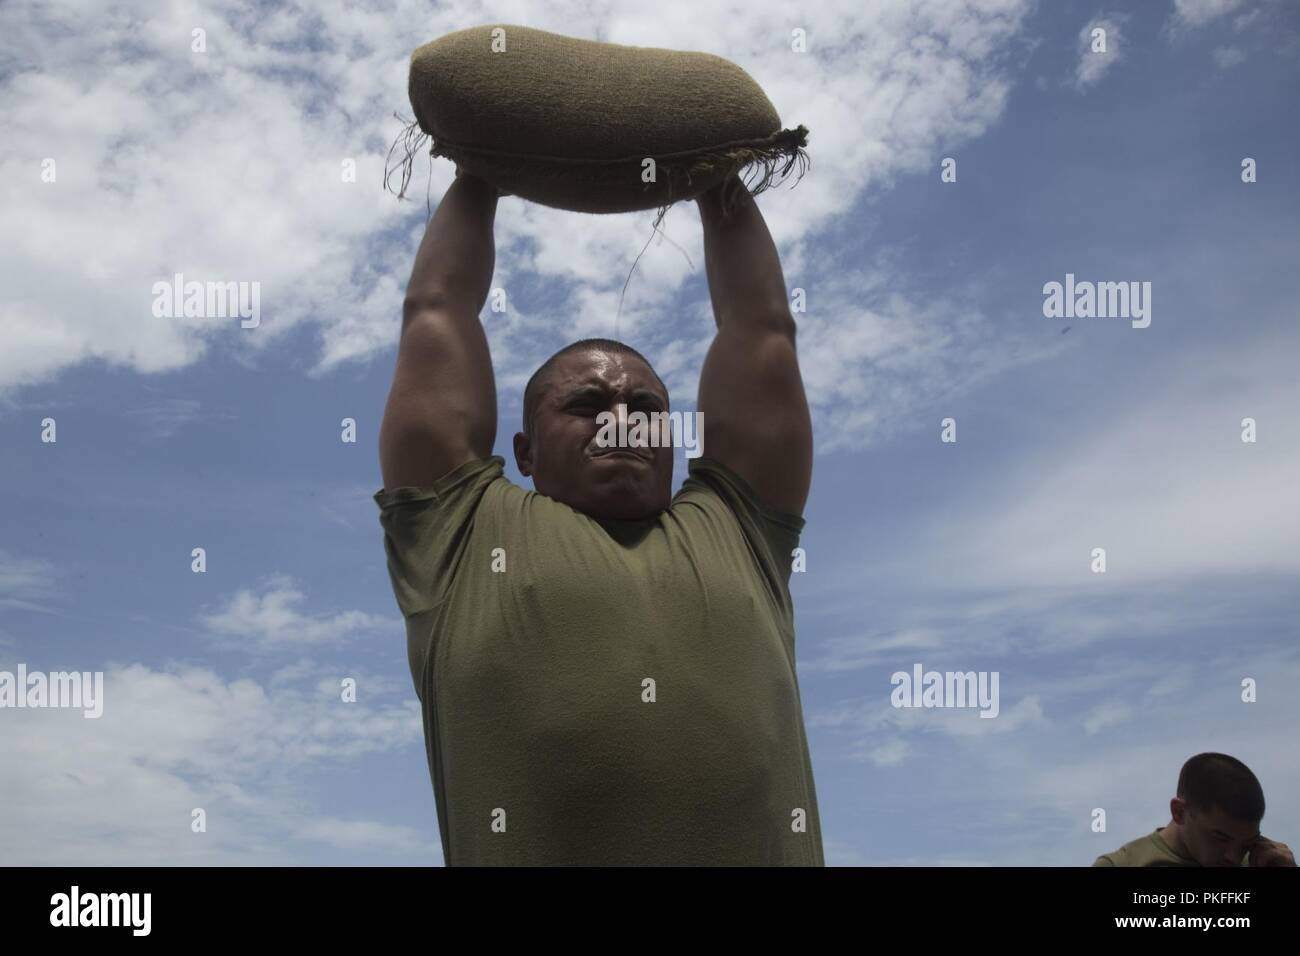 PACIFIC OCEAN (August 1, 2018) – U.S. Marine Lance Cpl. Erick Flores-Garcia a machine gunner with Battalion Landing Team 3/1, 13th Marine Expeditionary Unit (MEU), shoulder presses a sand bag in a Marine Corps Martial Arts Program course aboard the San Antonio-class amphibious transport dock USS Anchorage (LPD 23), during a regularly scheduled deployment of the Essex Amphibious Ready Group (ARG) and 13th MEU. The Essex ARG/MEU team is a strong, flexible, responsive and consistent force capable of maneuver warfare across all domains; it is equipped and scalable to respond to any crisis from hum - Stock Image